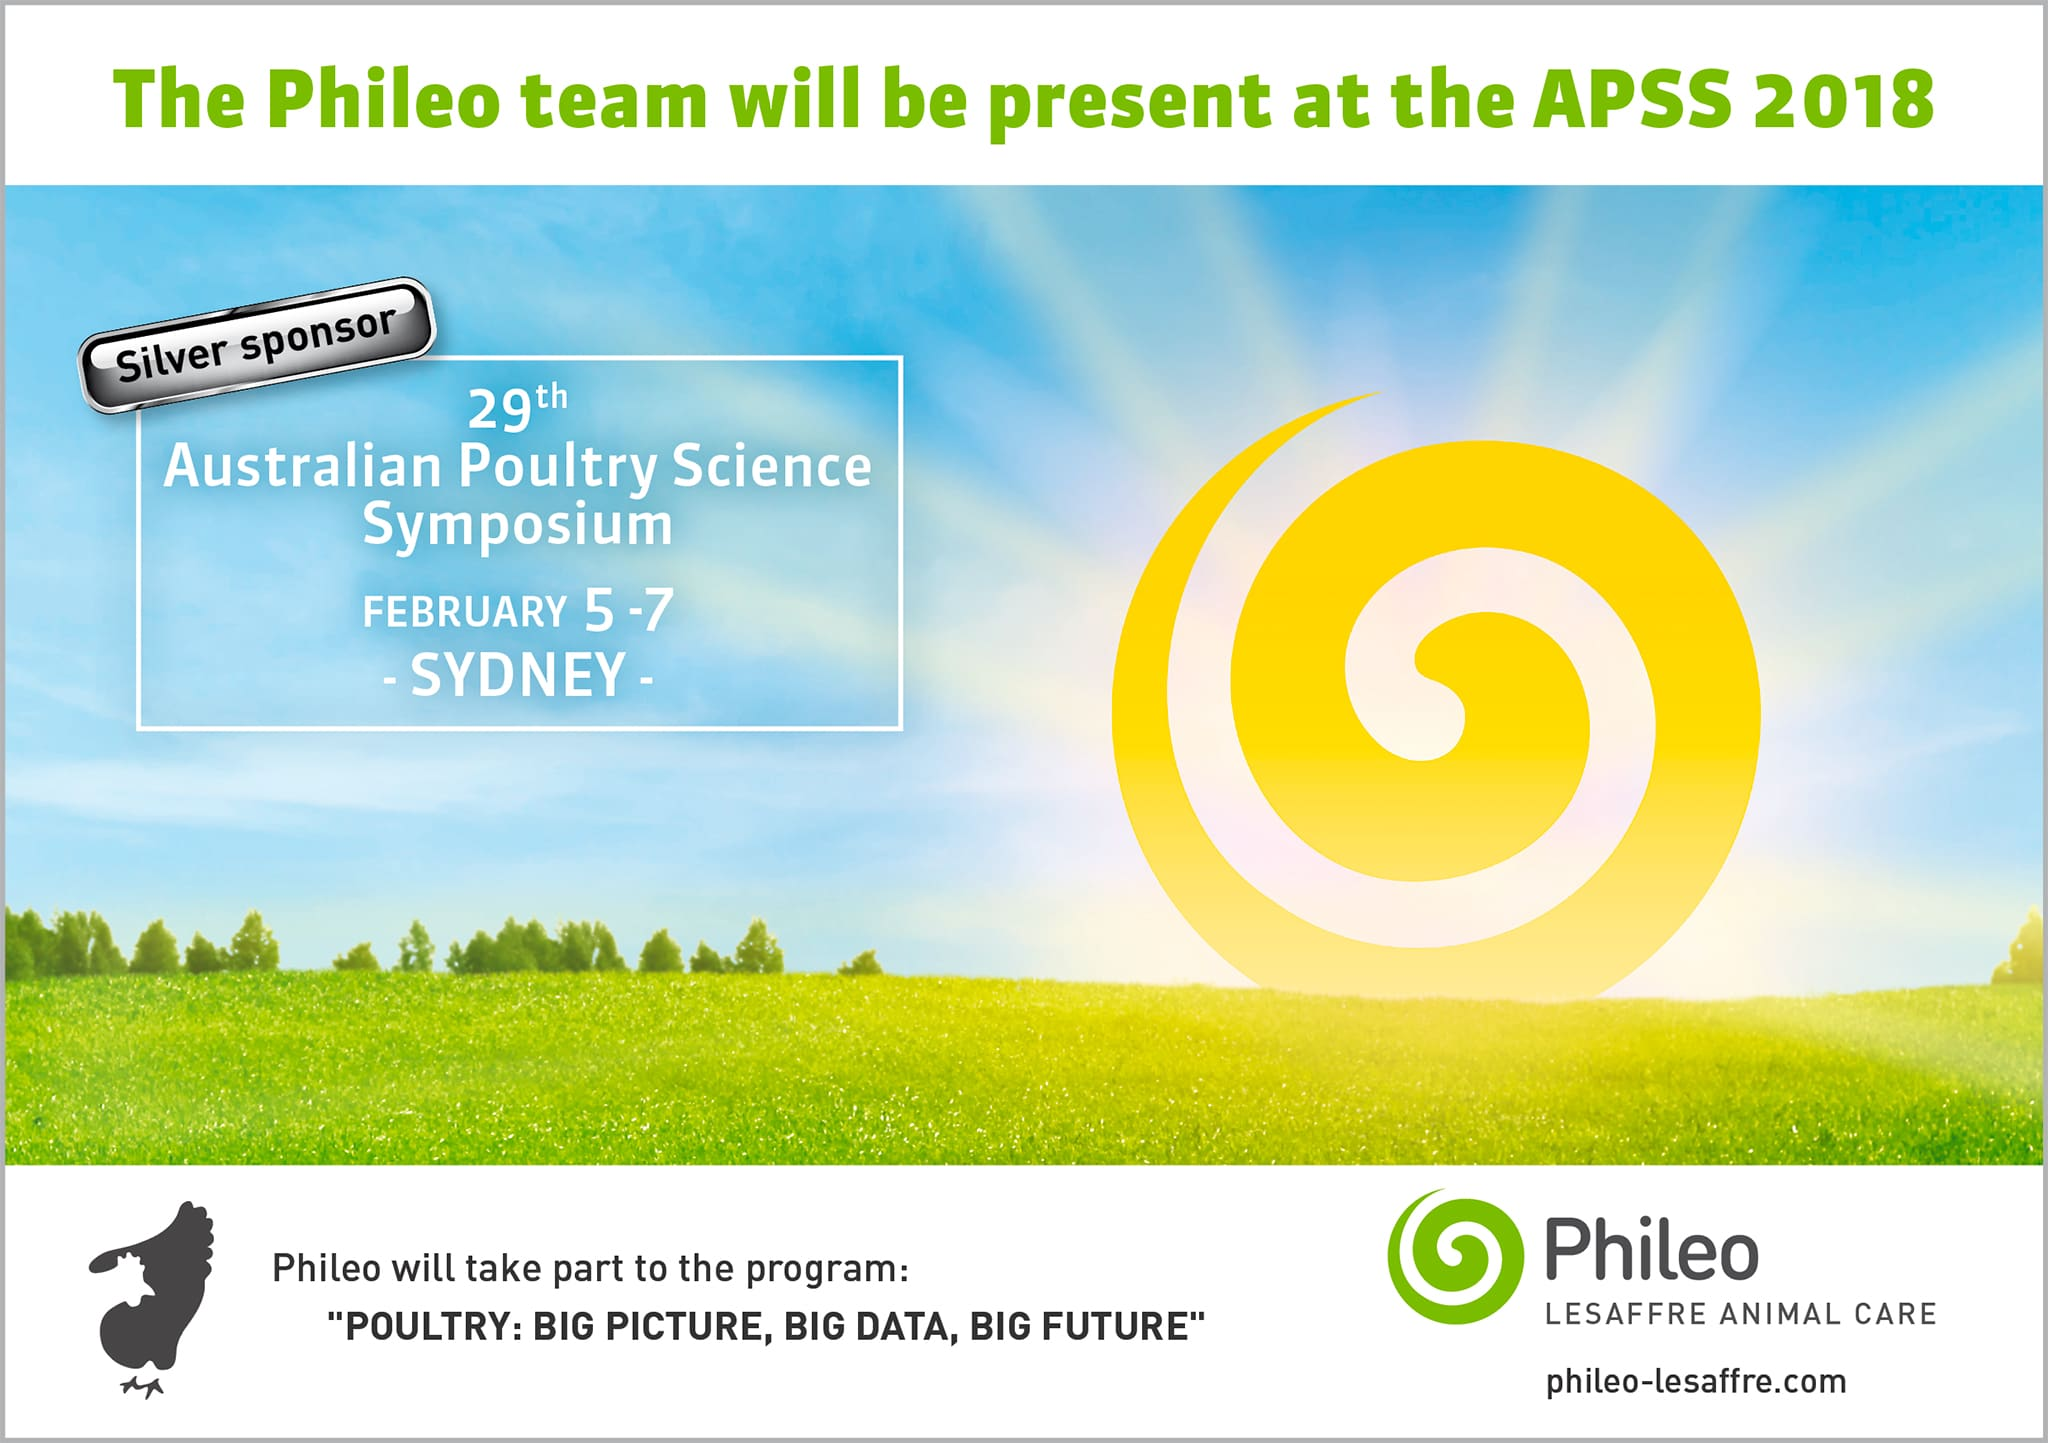 The Phileo will be present at the APSS 2018